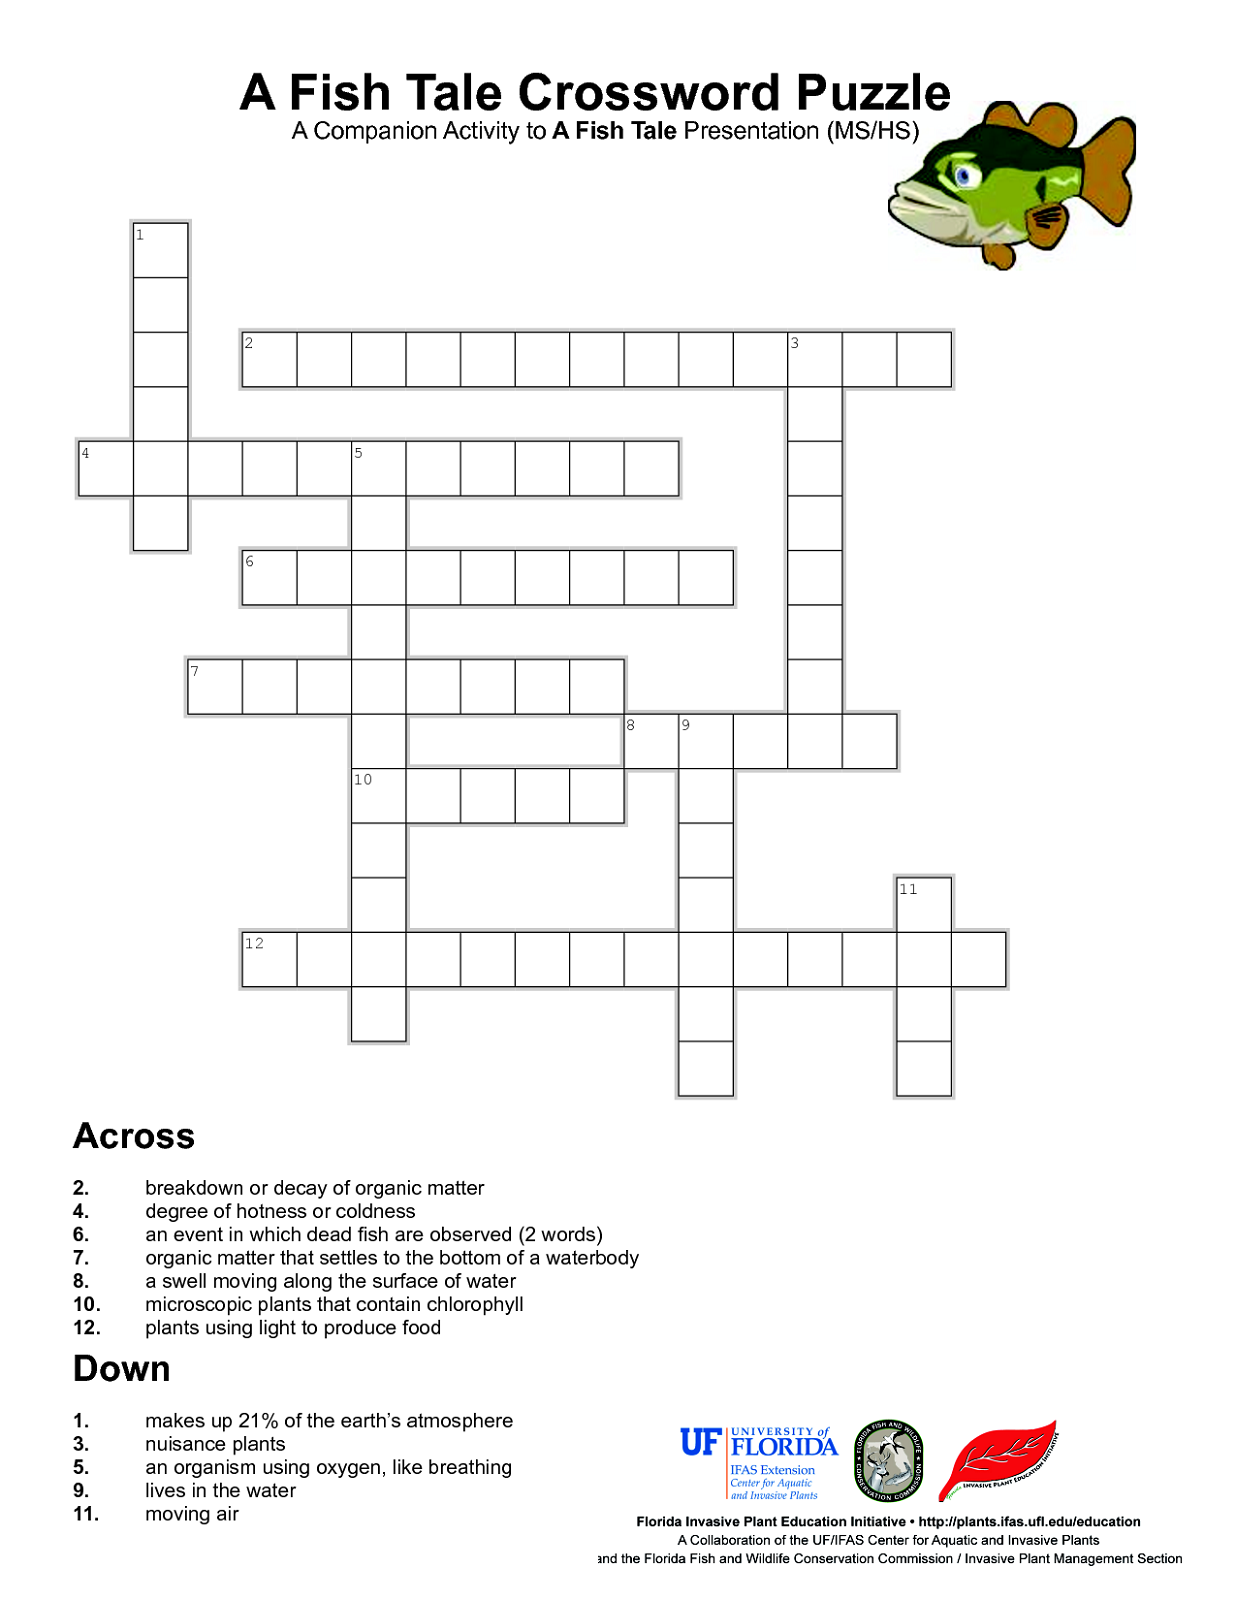 easy-crossword-puzzles-for-kids-fish